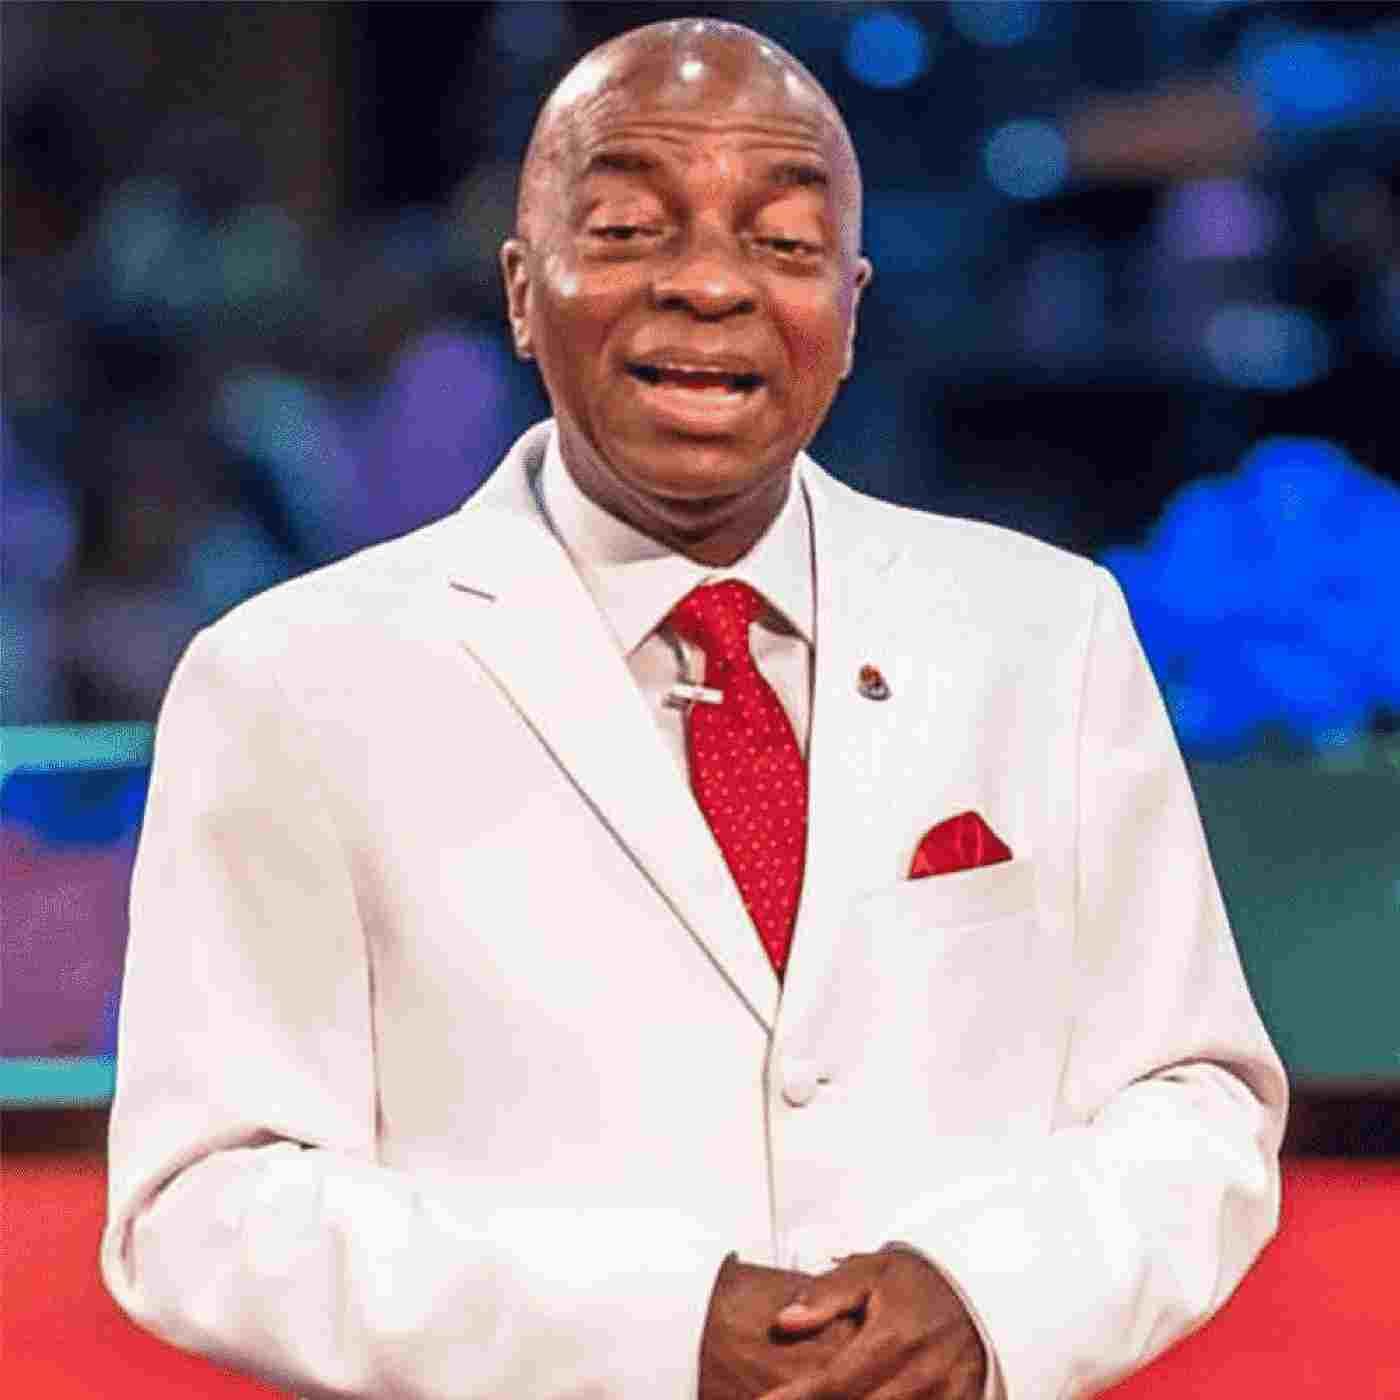 Only changed people change their World - Bishop Oyedepo to Nigerians